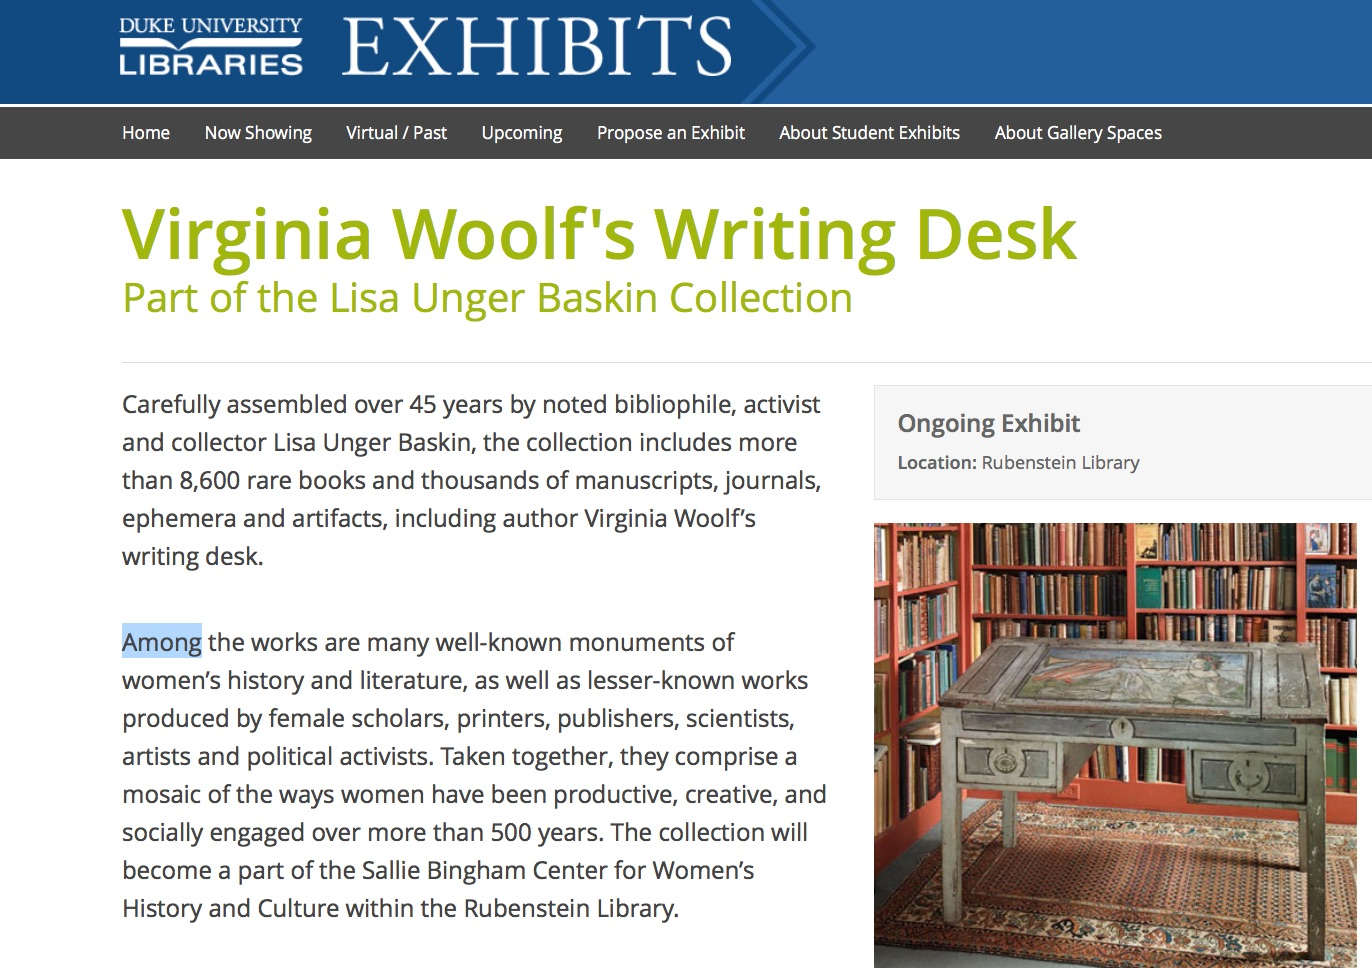 virginia woolf an essay in criticism Recent feminist criticism has revolutionized the way we view modern literature, none more than the stories and novels of virginia woolf jane marcus here collects.